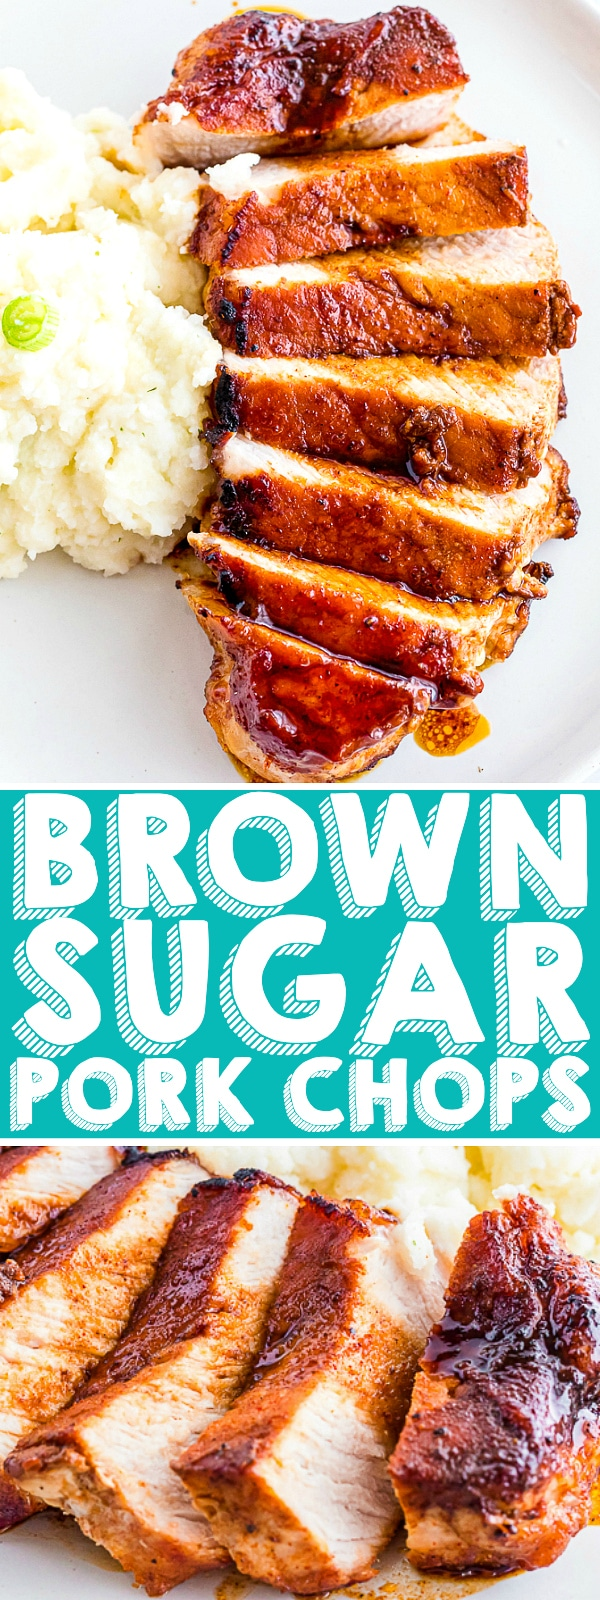 These easy Brown Sugar Pork Chops have a delicious sweet spice rub that gives your pork chops amazing flavor! With instructions for cooking on the stovetop, in the oven and on the grill, this will quickly become your go-to pork chop recipe! | THE LOVE NERDS #porkchoprecipe #easydinner #30minutemeal